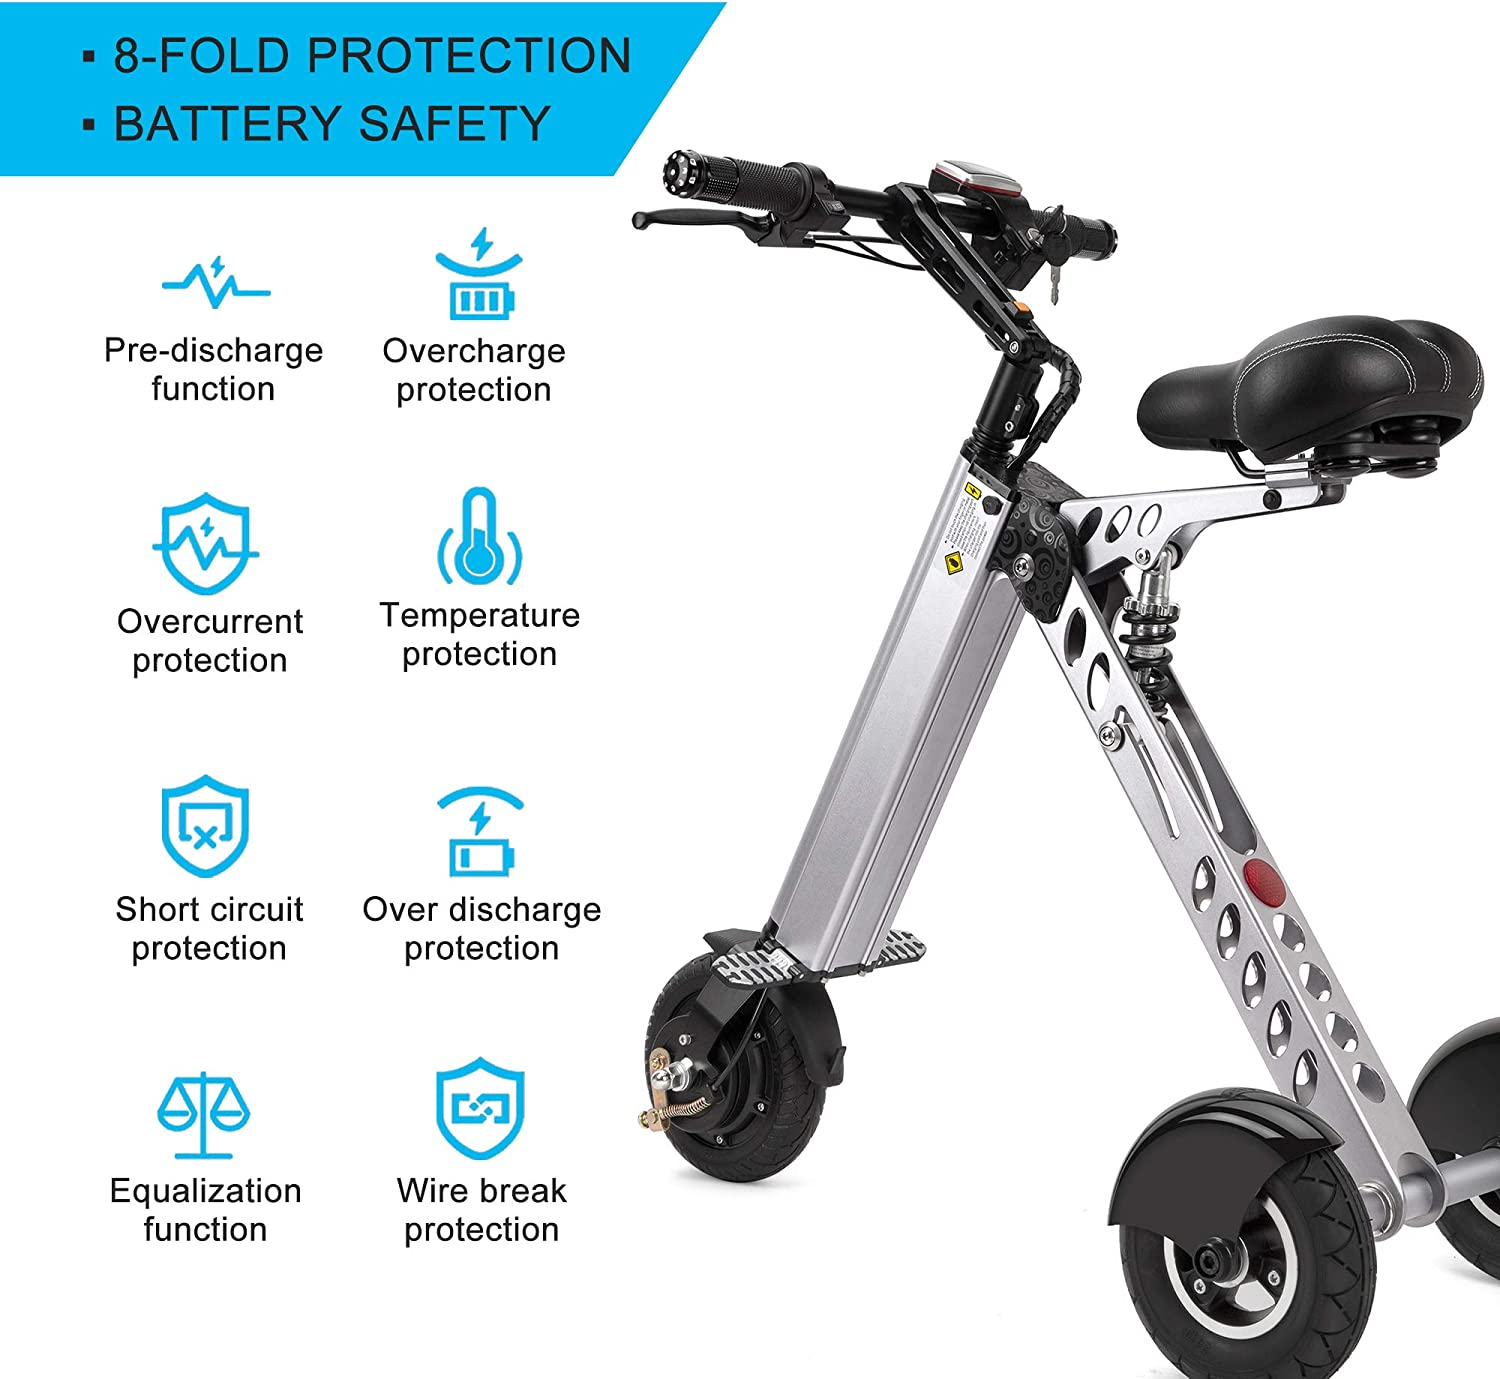 TopMate ES30 Electric Scooter Mini Foldable Tricycle Weight 14KG with 3 Gears Speed Limit 6-12-20KM/H | Full Charge 30KM Range | Especially Suitable ...